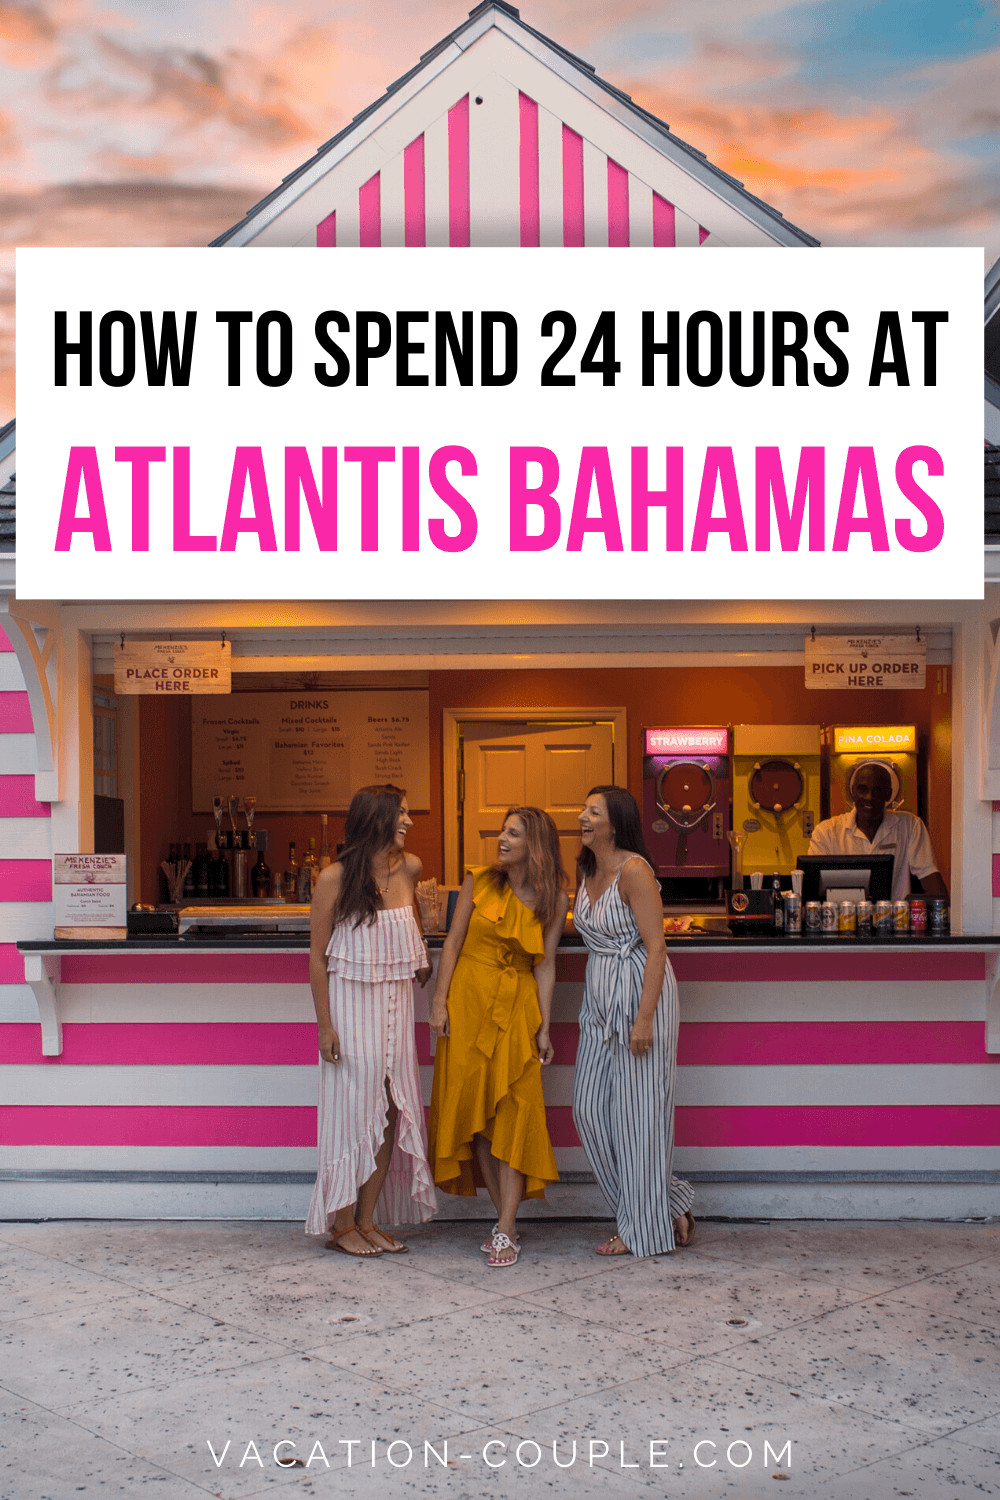 Wondering what to do in Atlantis Bahamas for the day? We cover everything from waterslides to food to The Lost City of Atlantis in this comprehensive travel guide! #AtlantisBahamas #TheBahamas #TravelGuide #ItsBetterInTheBahamas